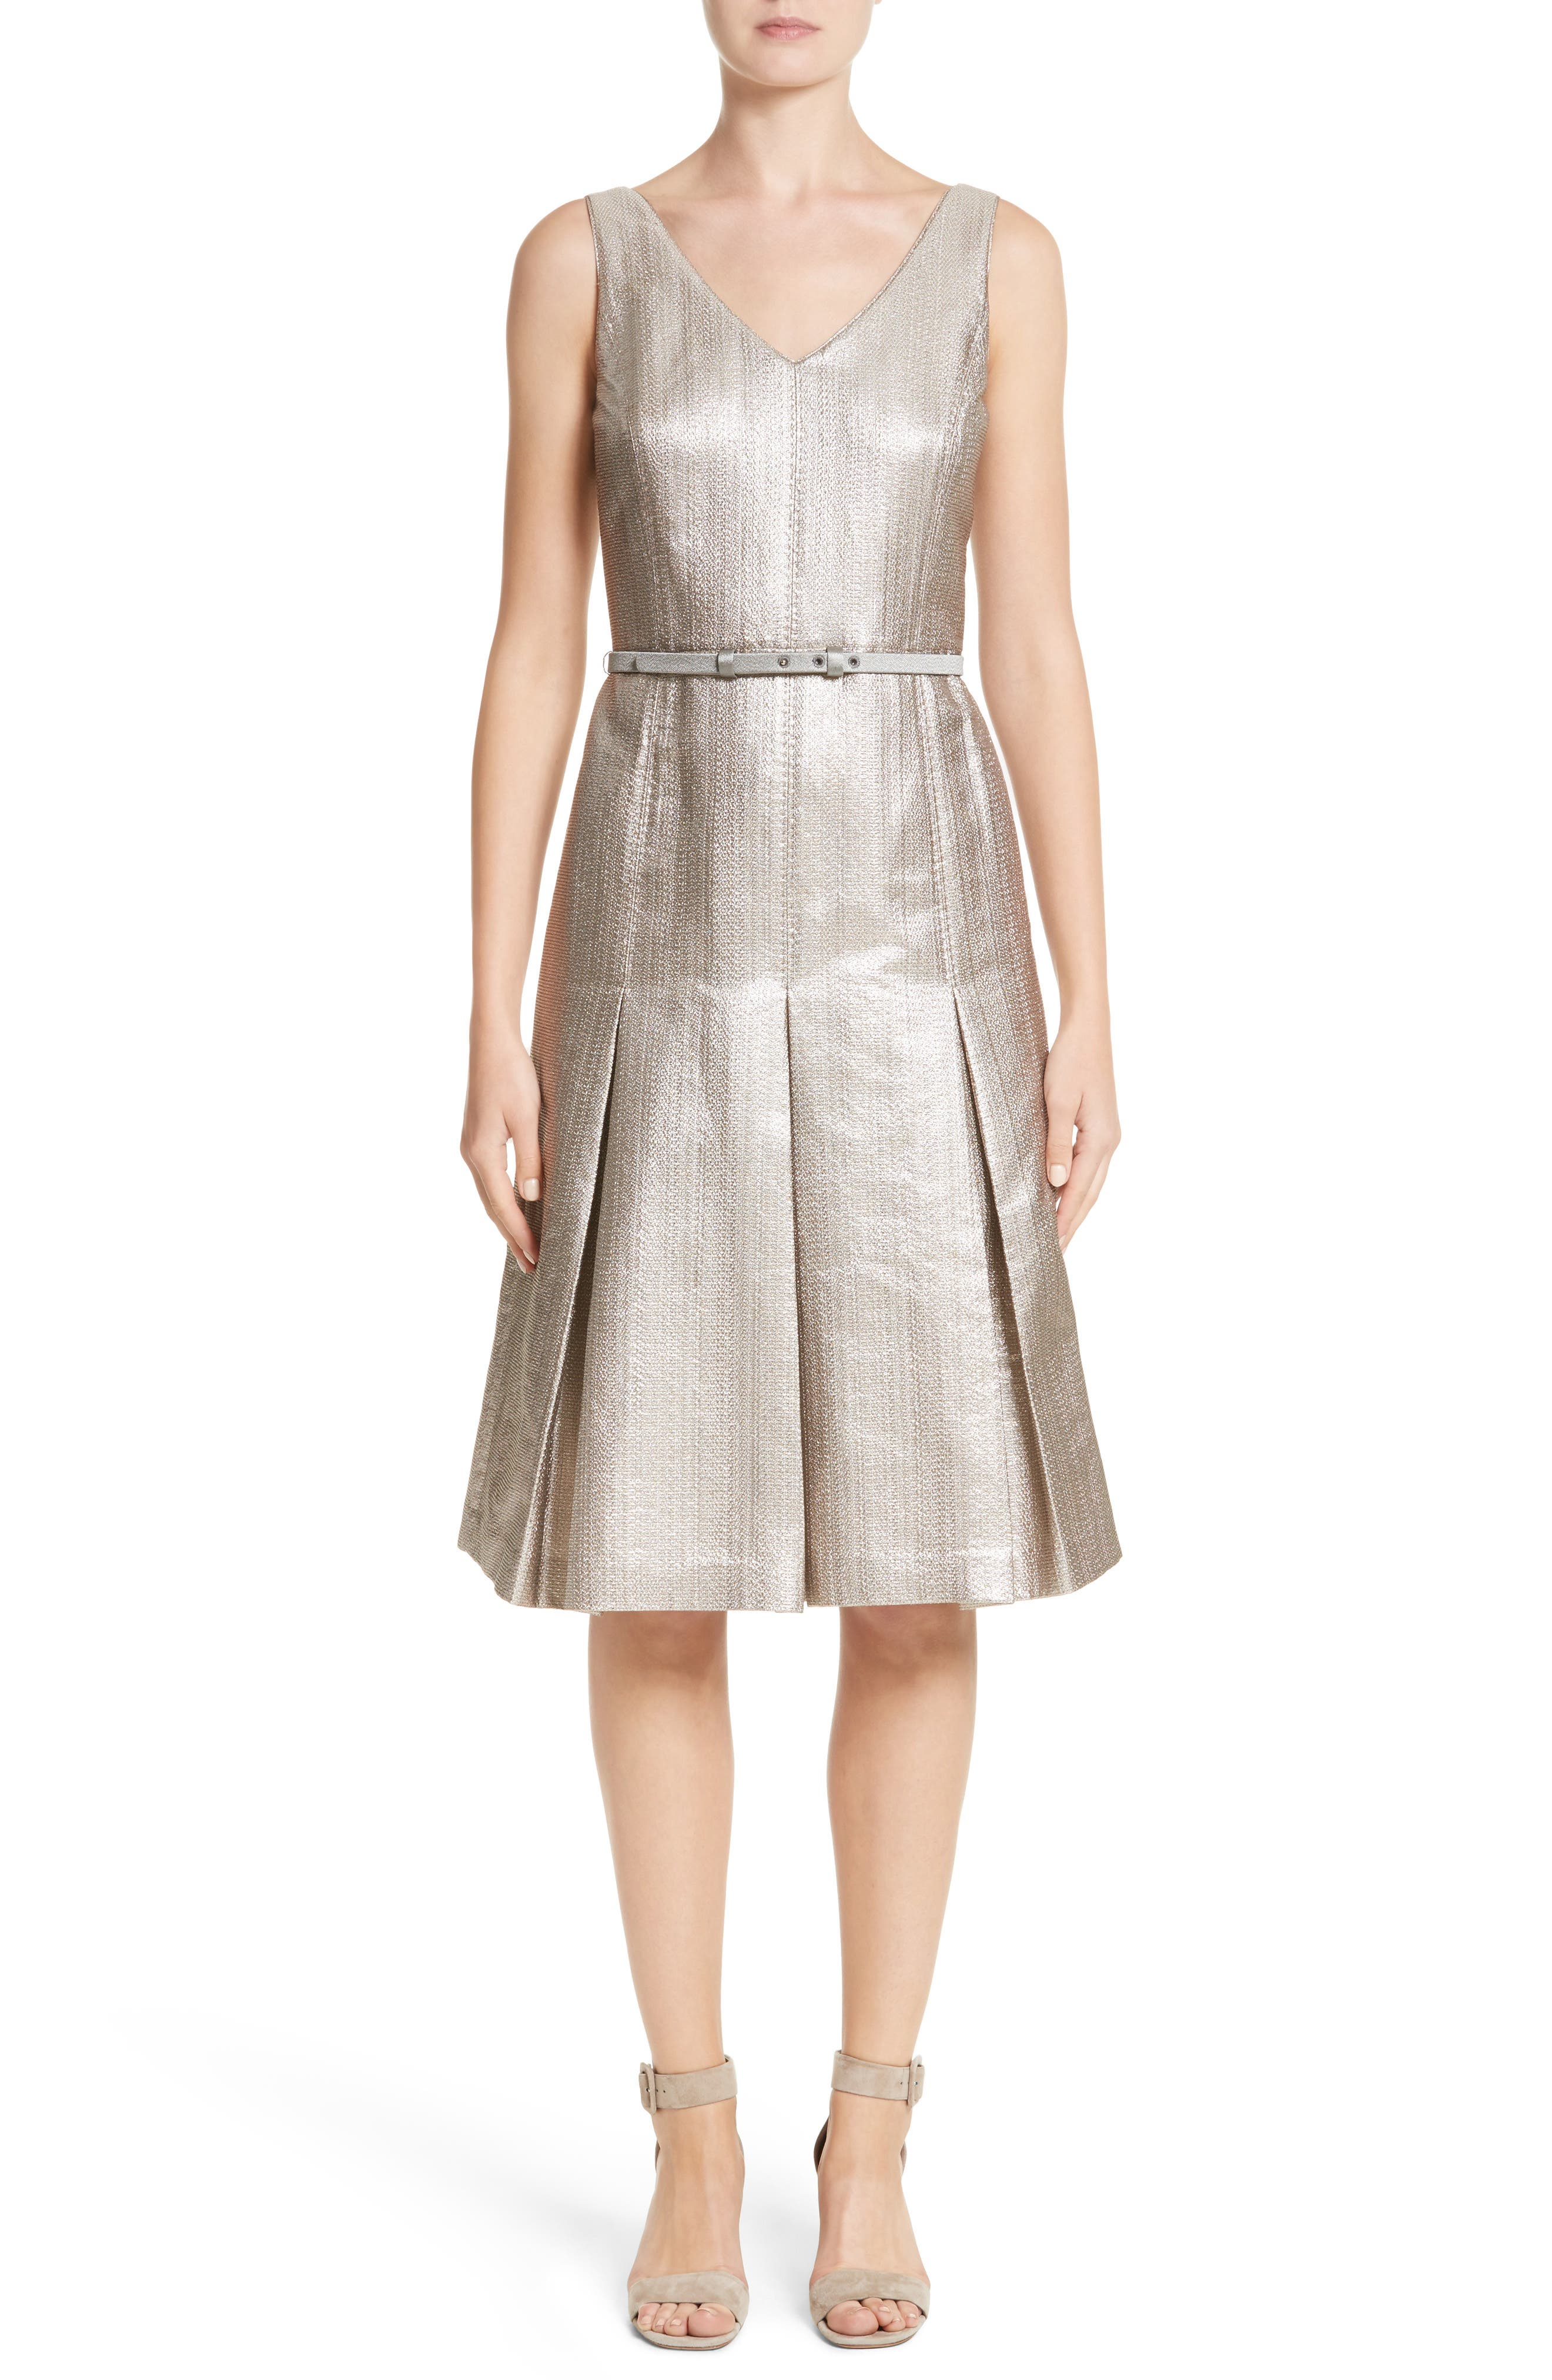 Lois Ceremonial Cloth Dress,                         Main,                         color, Oyster Metallic